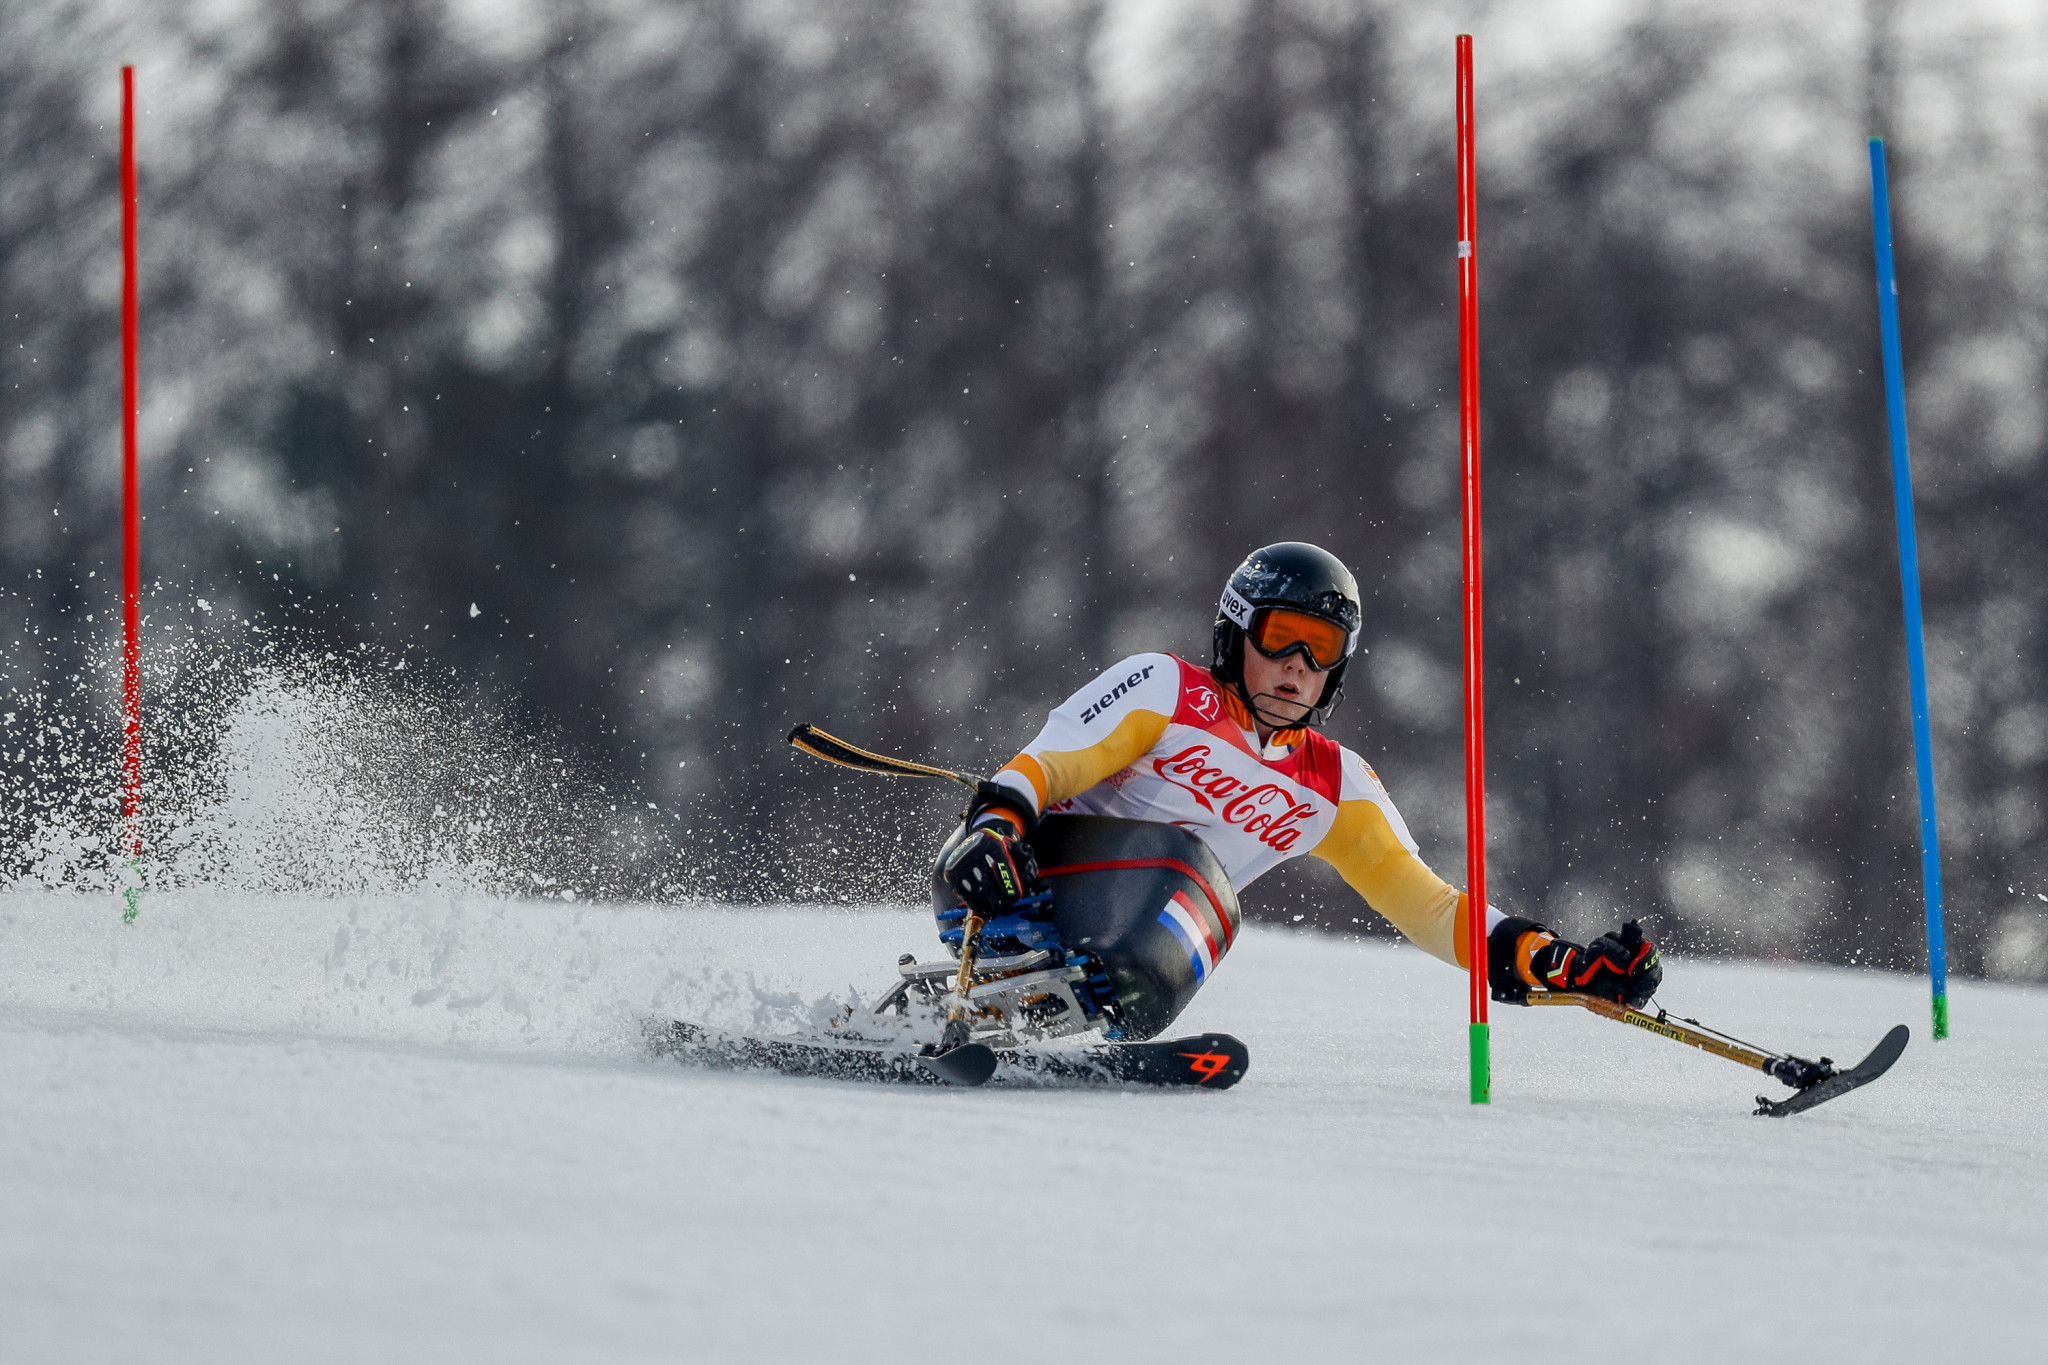 Double world champion Jeroen Kampschreur won the men's sitting event today at the World Para Alpine Skiing World Cup in La Molina in Spain ©Getty Images